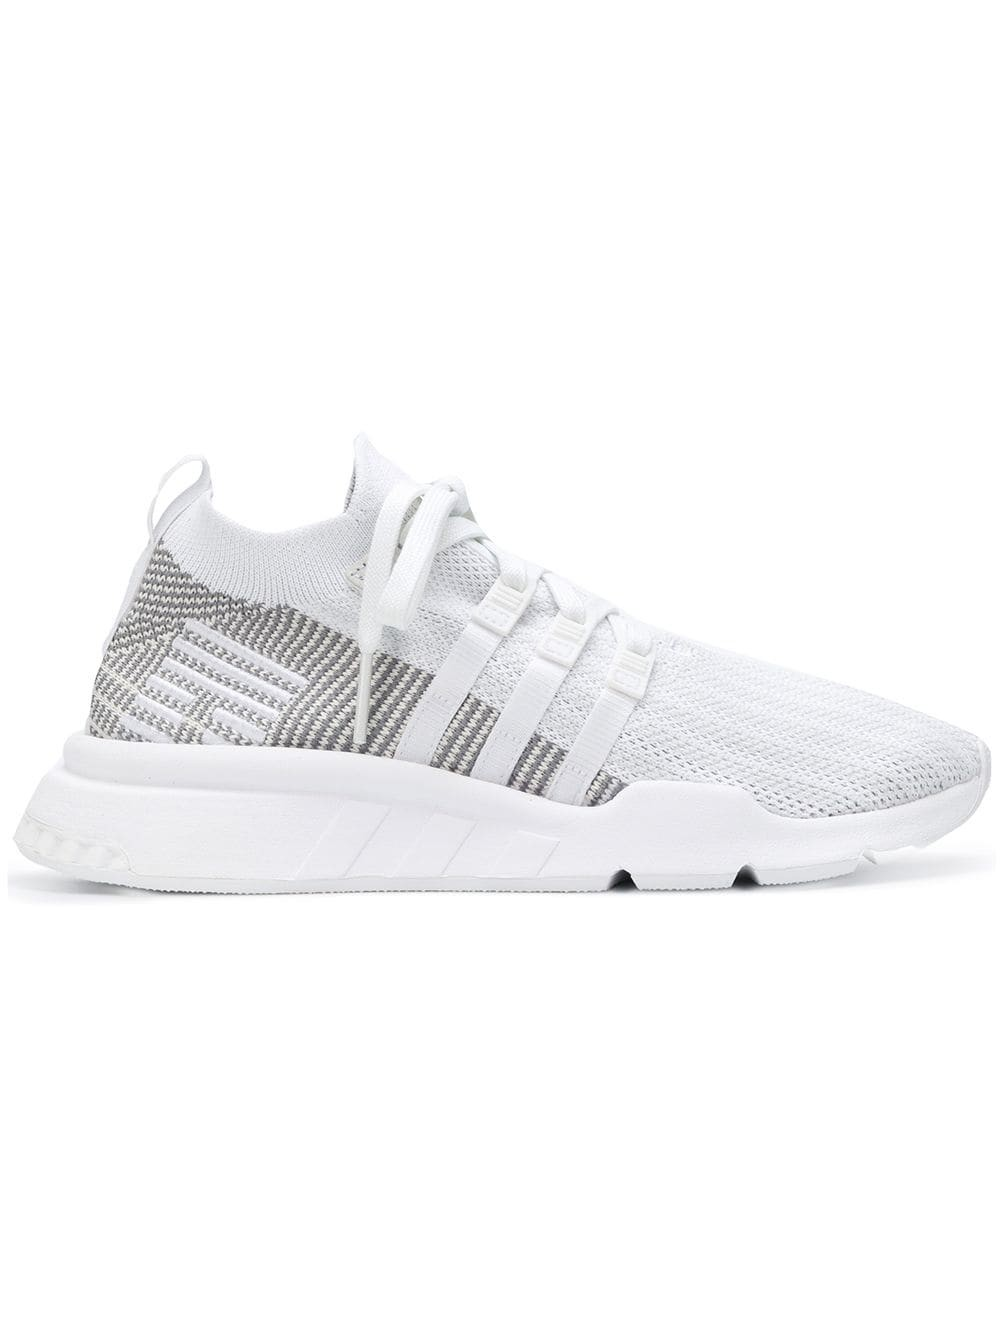 Adidas EQT Support ADV Mid Blanche Gris CQ2997